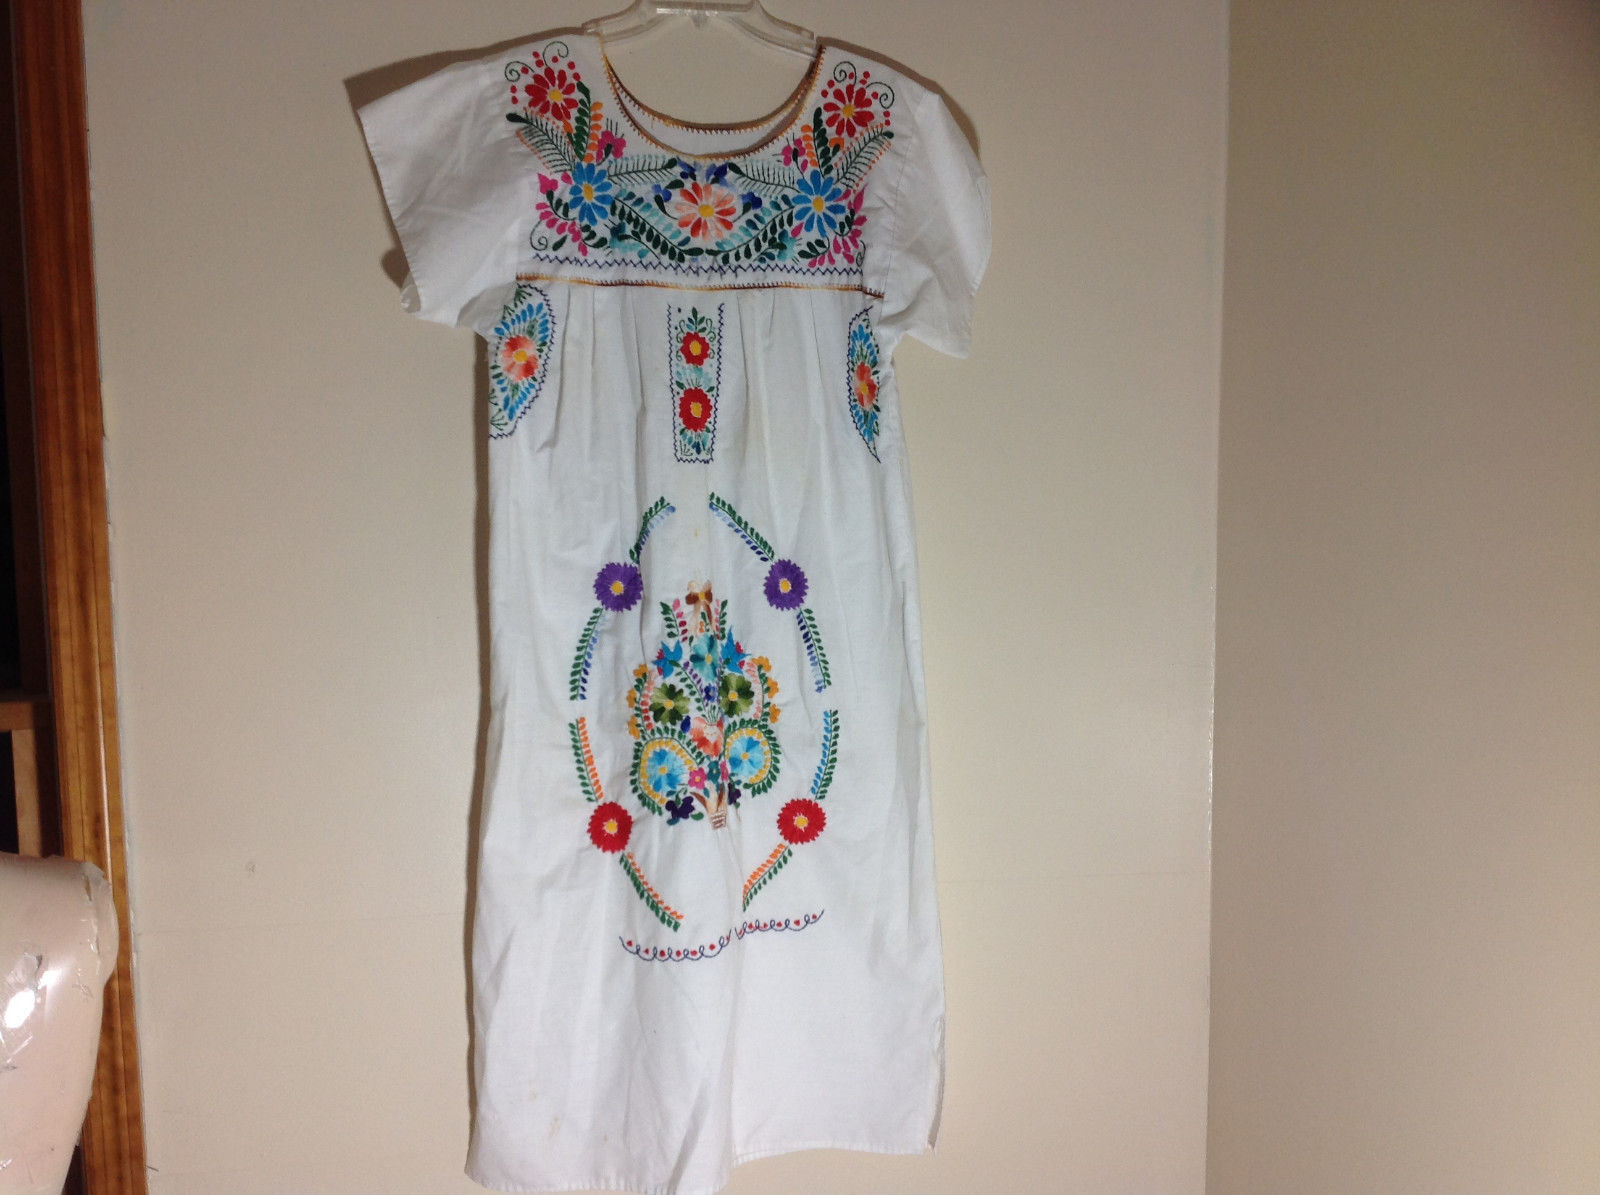 White Short Sleeve Full Length Dress Colorful Embellishments Size XL NO TAG